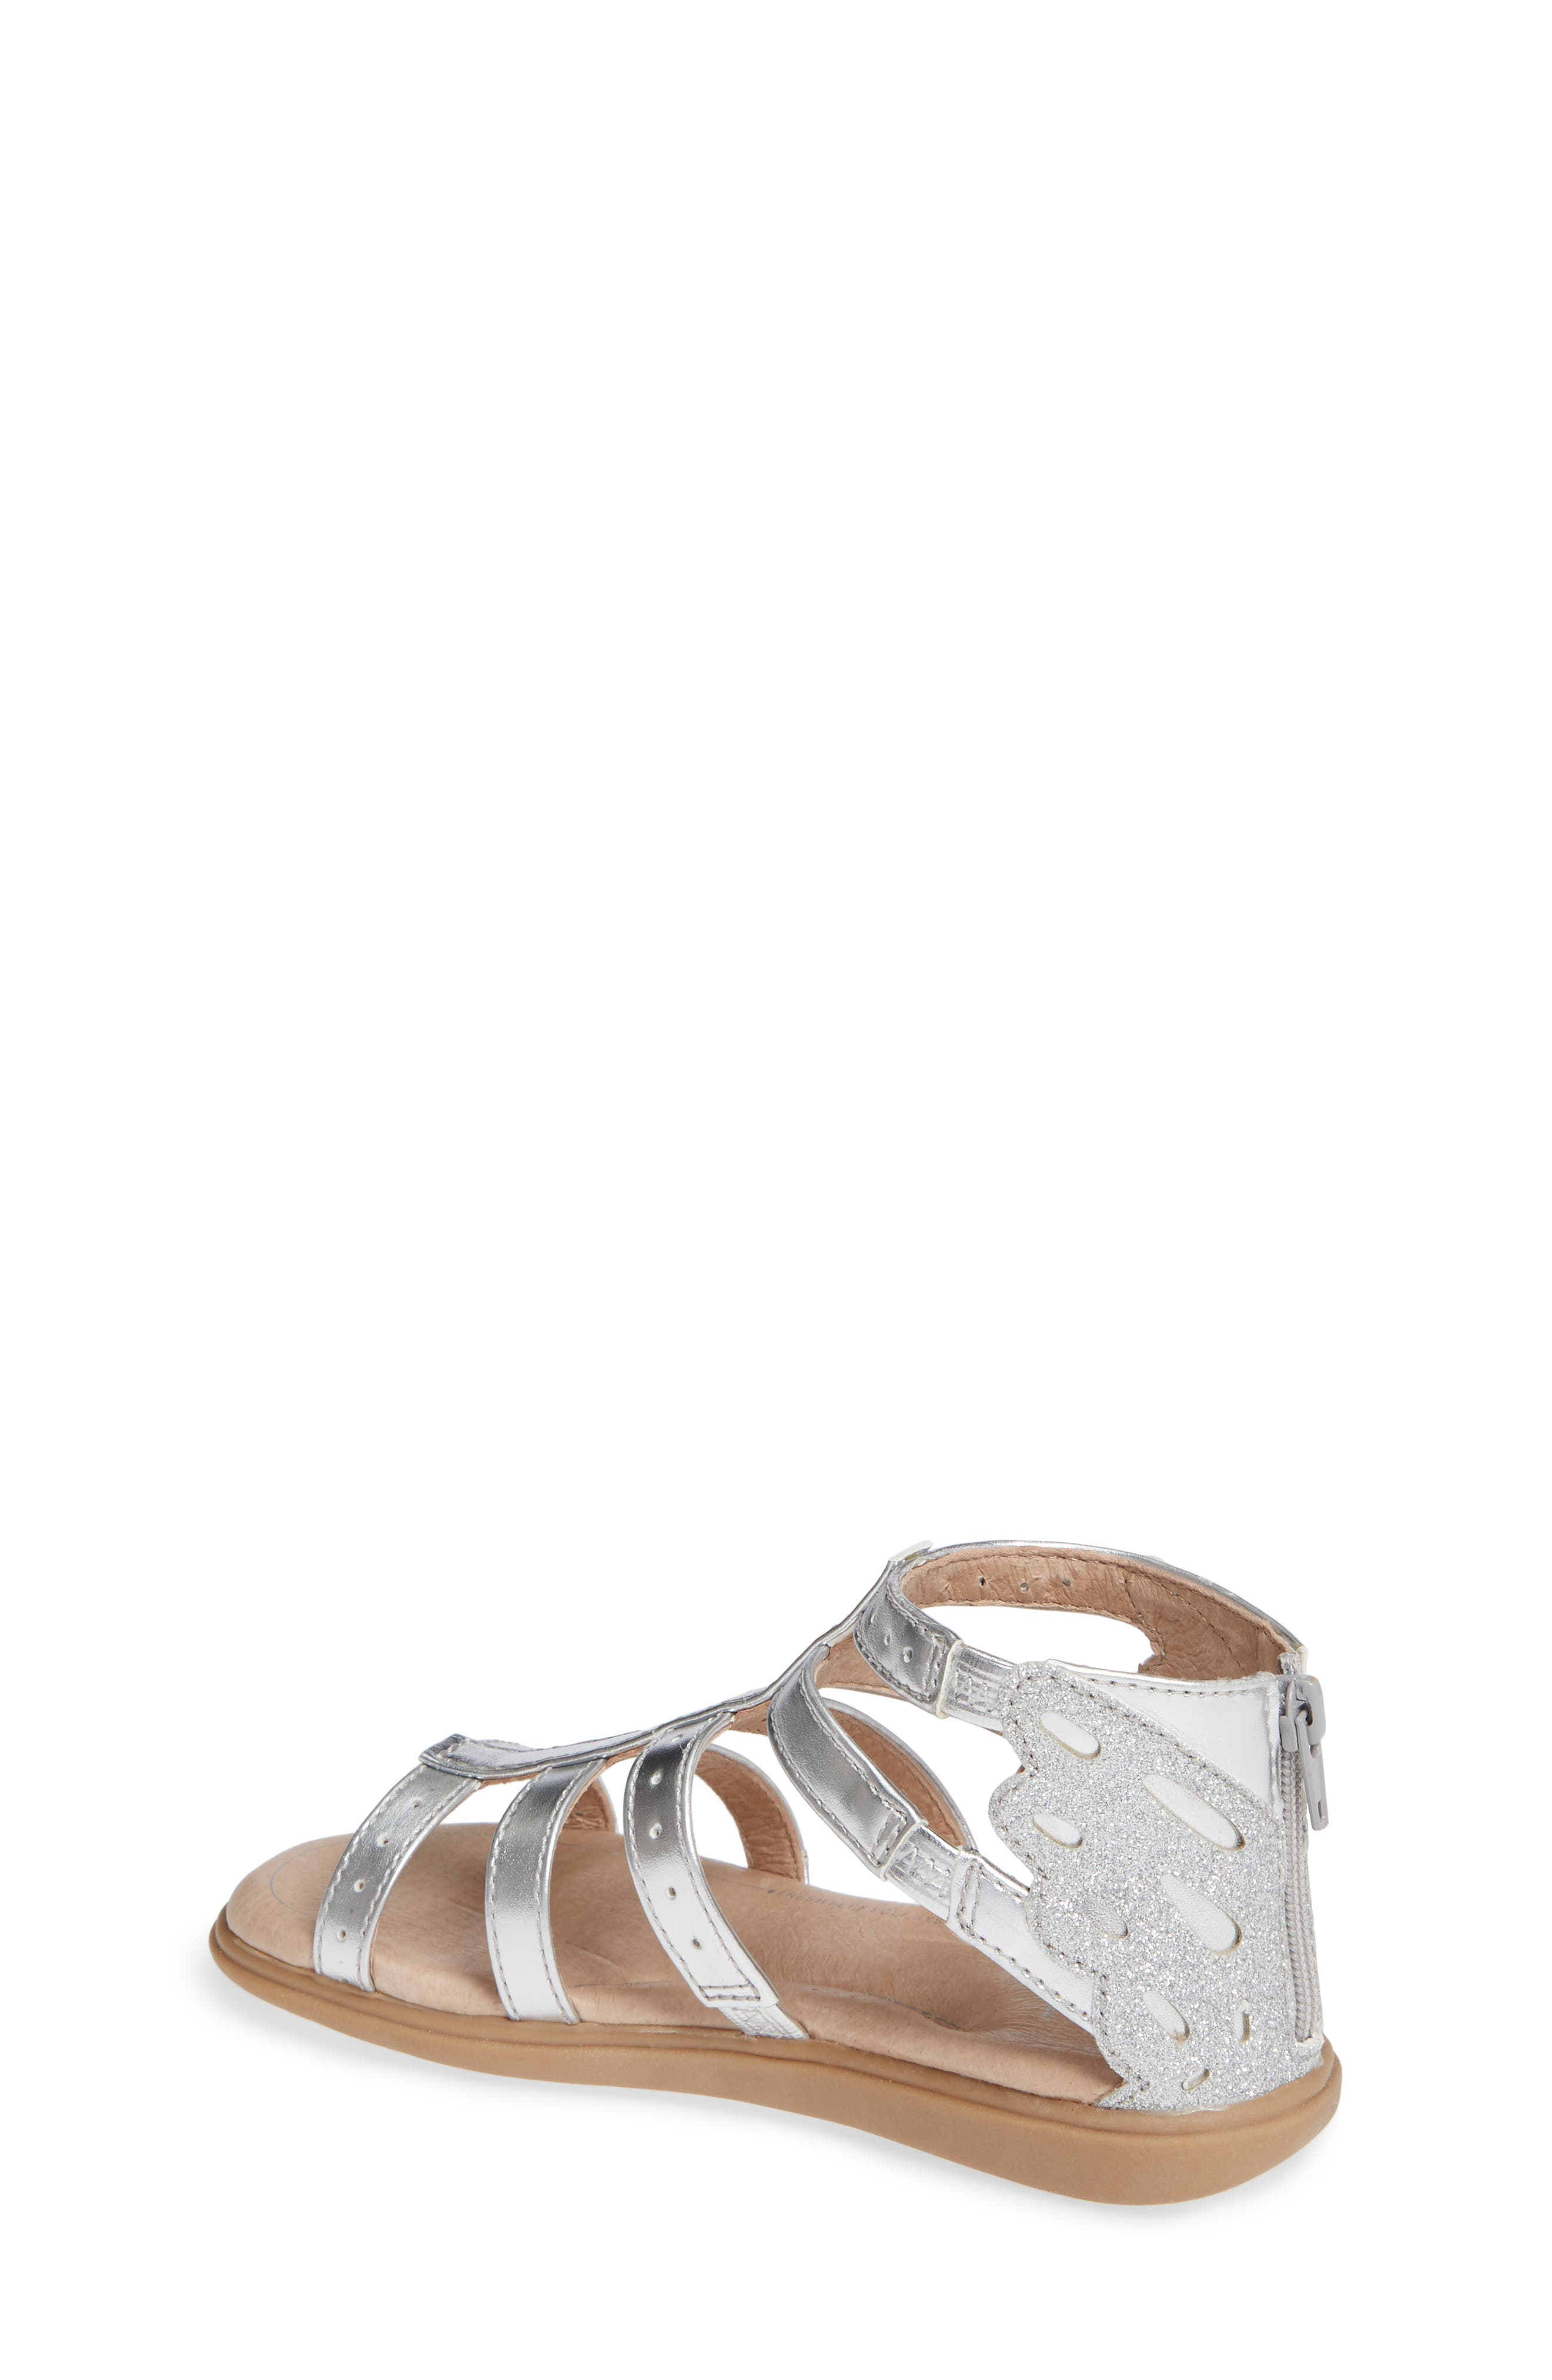 SOLE PLAY, Camille Metallic Sandal, Alternate thumbnail 2, color, SILVER